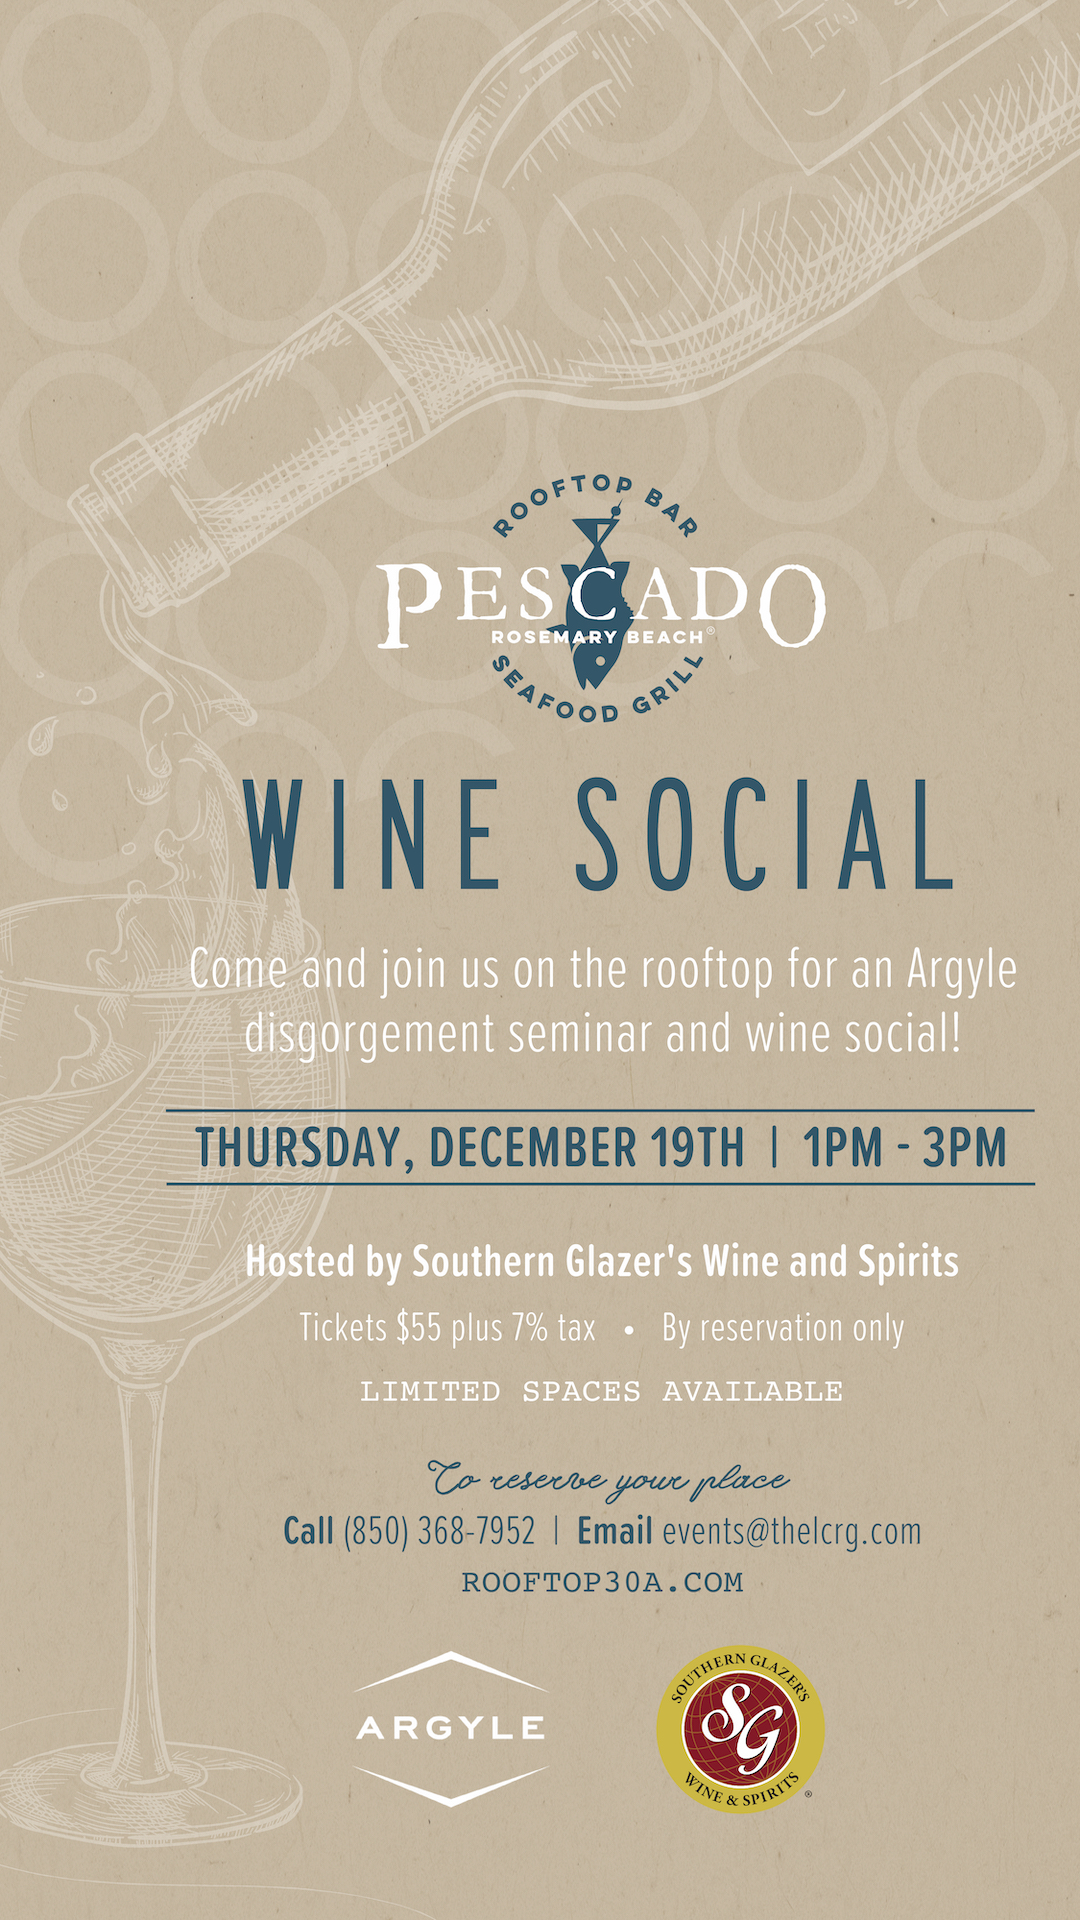 Pescado Seafood Grill and Rooftop Bar Hosts Argyle's Masters of Sparkling Disgorging and Dosage Seminar and Wine Social